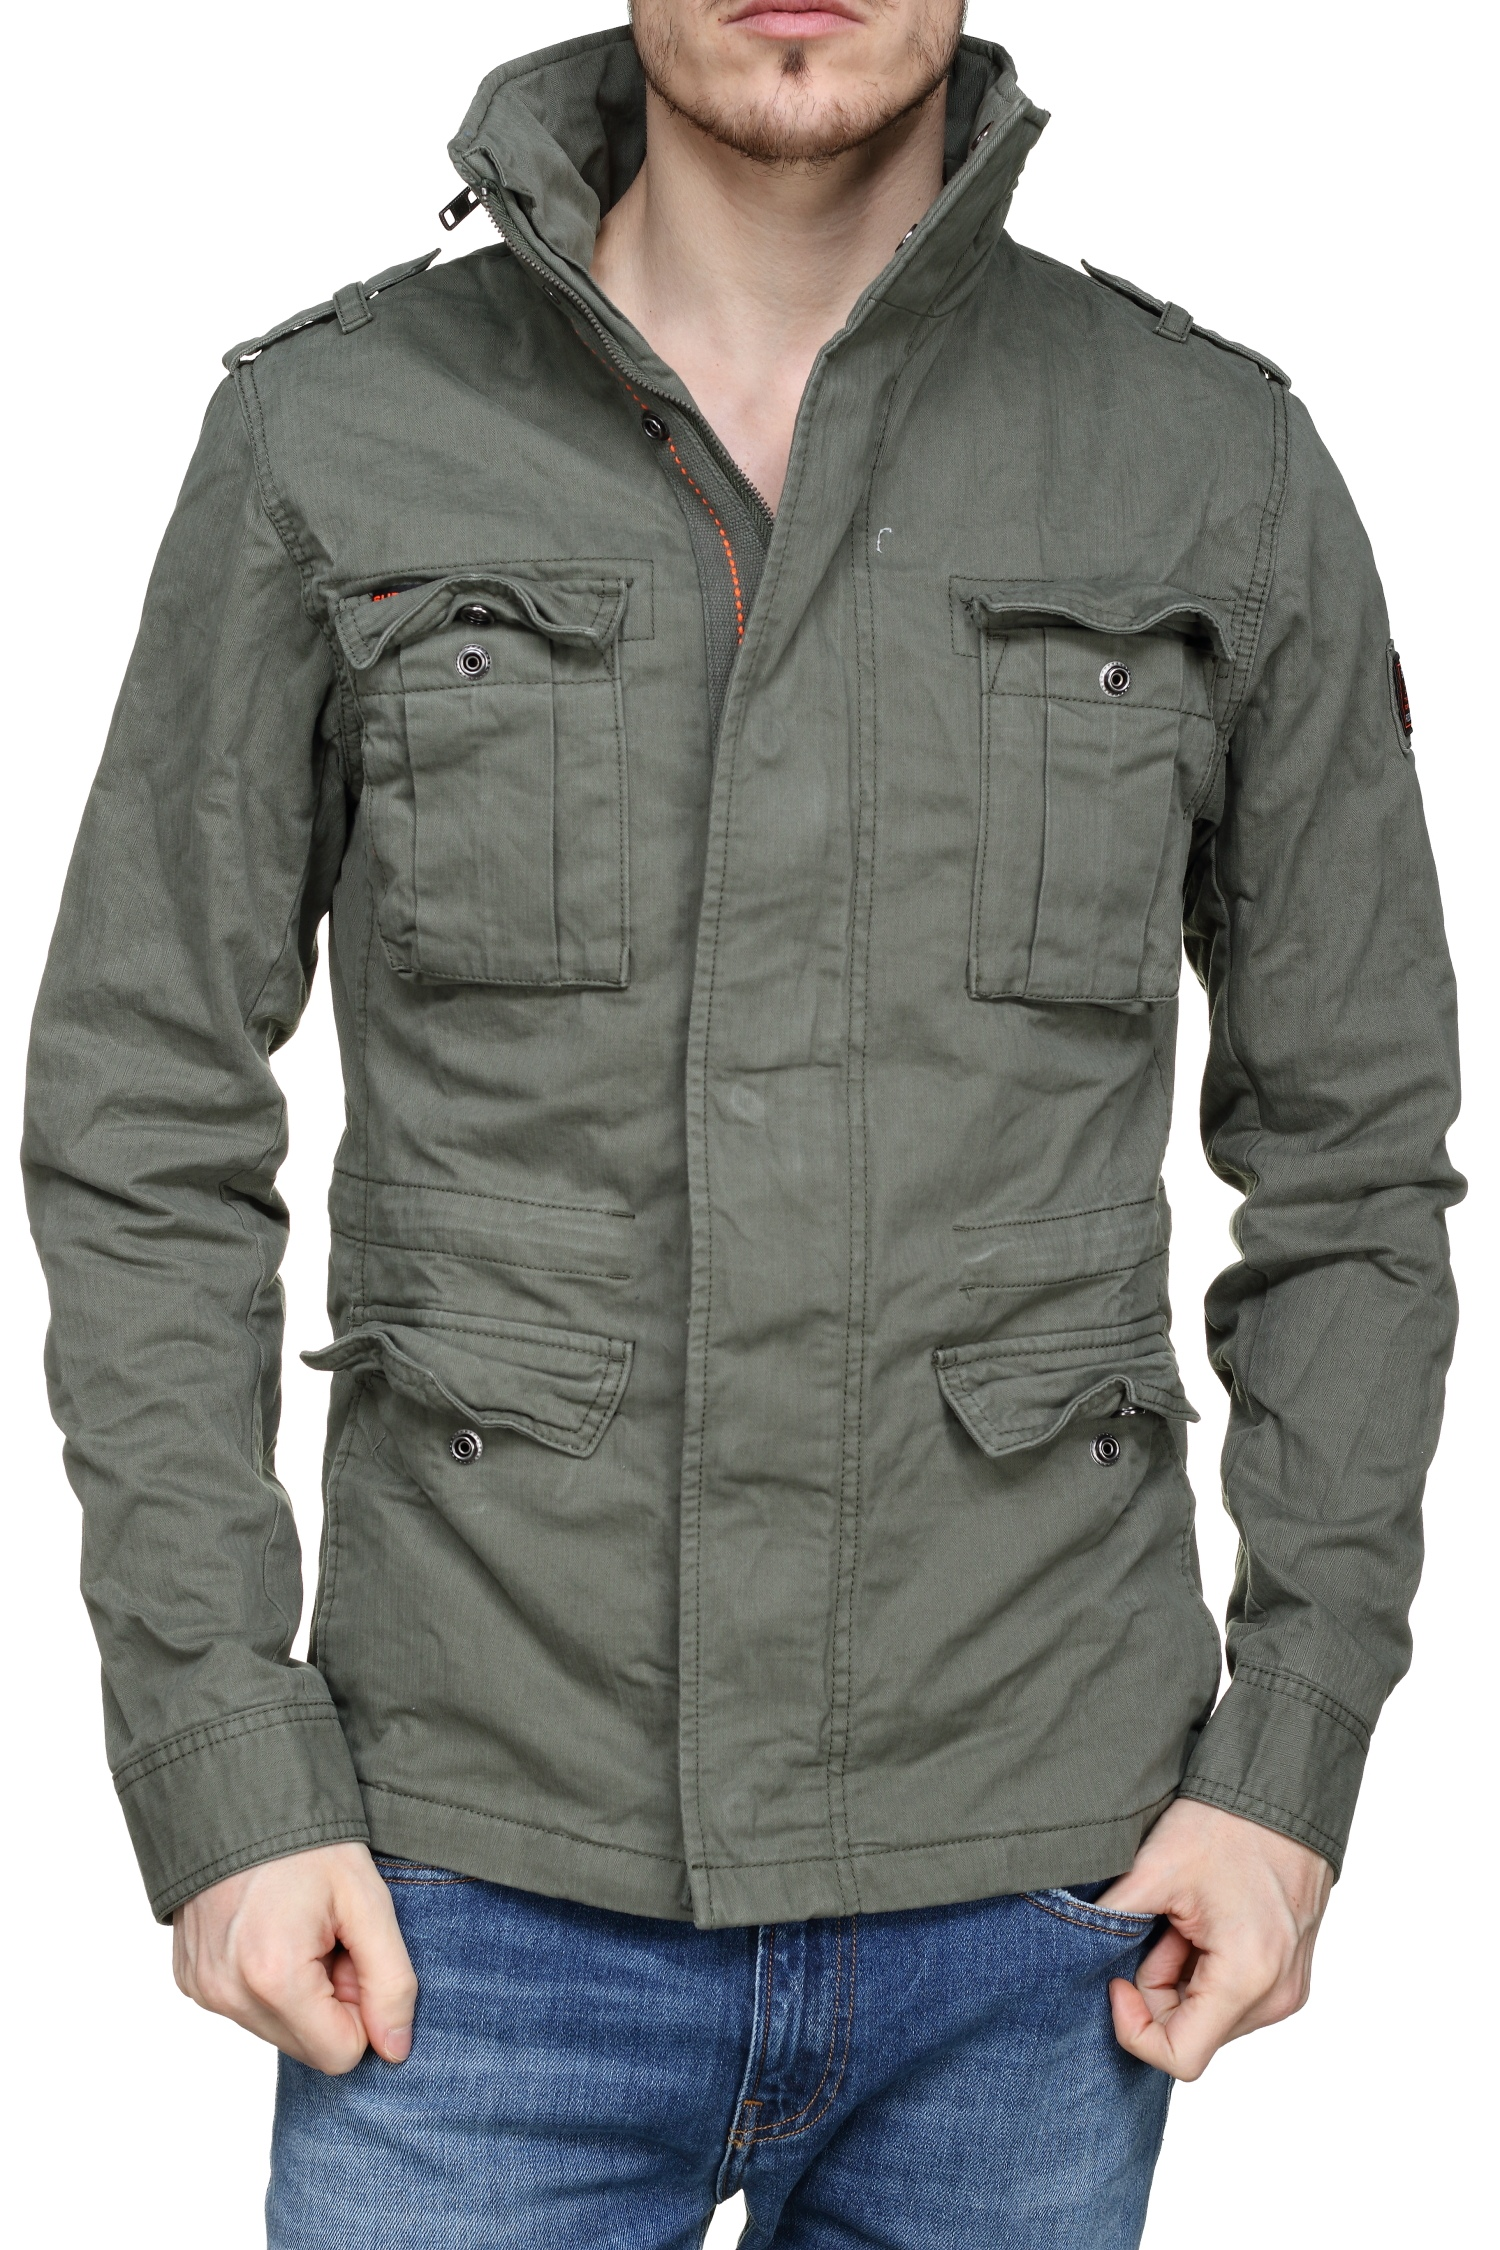 http://www.leadermode.com/163915/superdry-m50102nt-rookie-4-pkt-43e-army.jpg